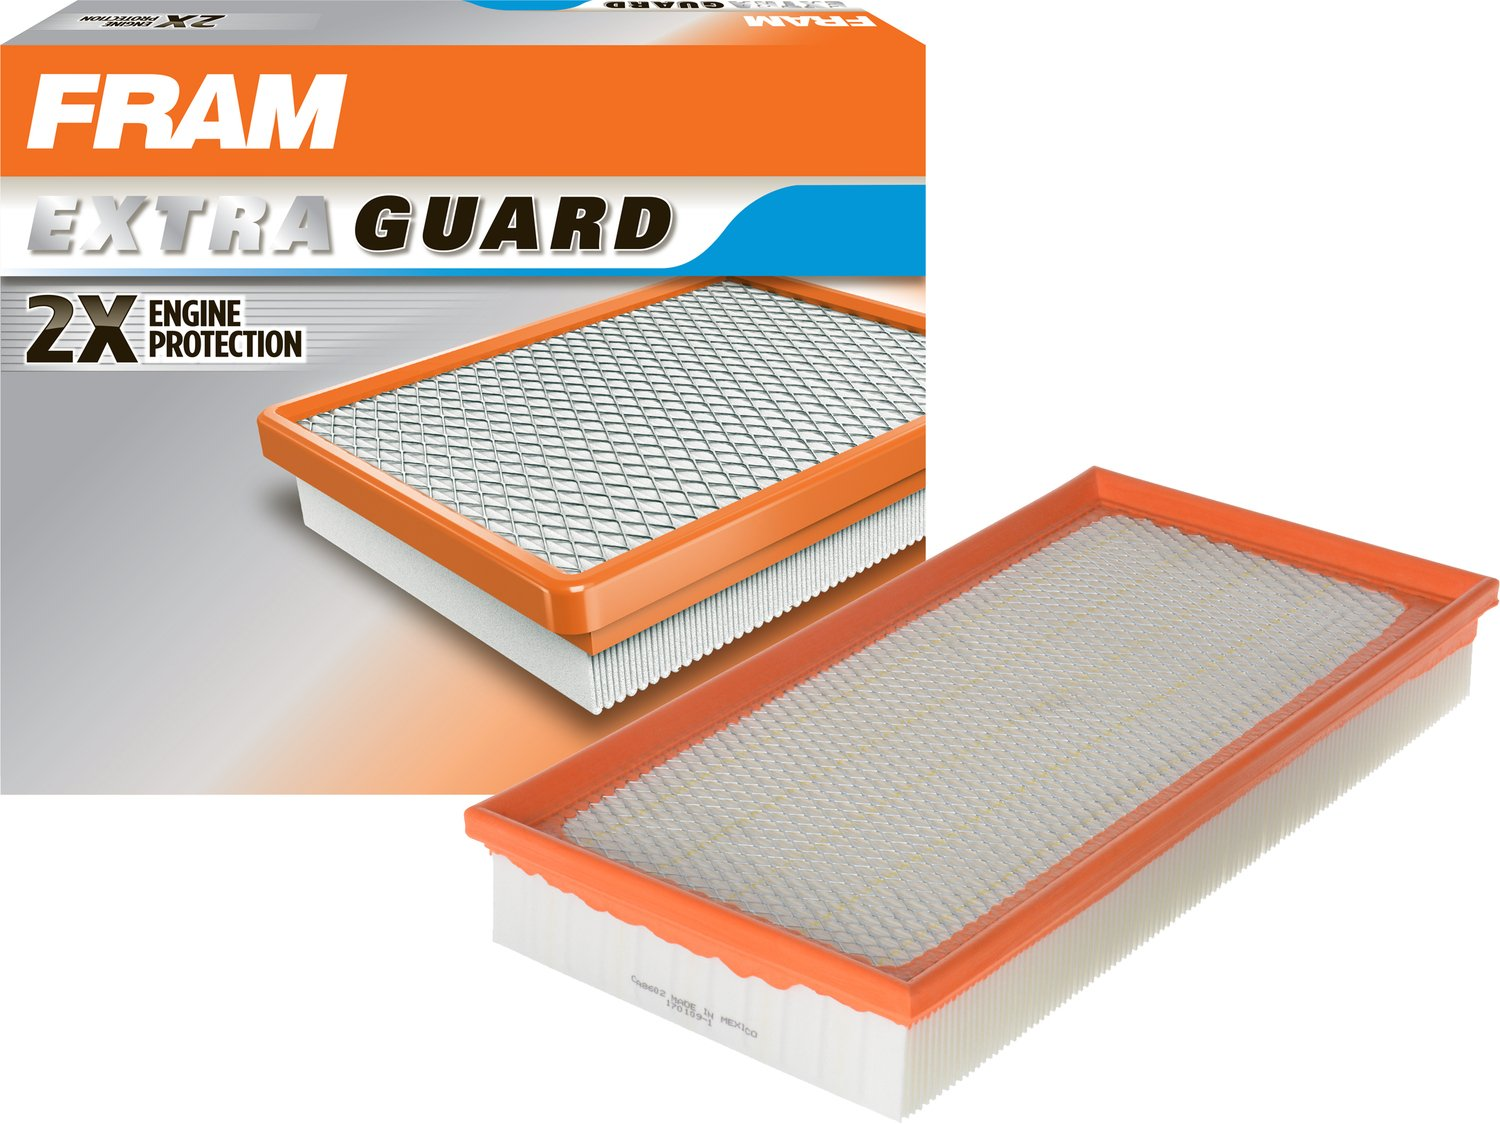 Fram CA8602 Extra Guard Flexible Panel Air Filter Fram Filters FFCA8602